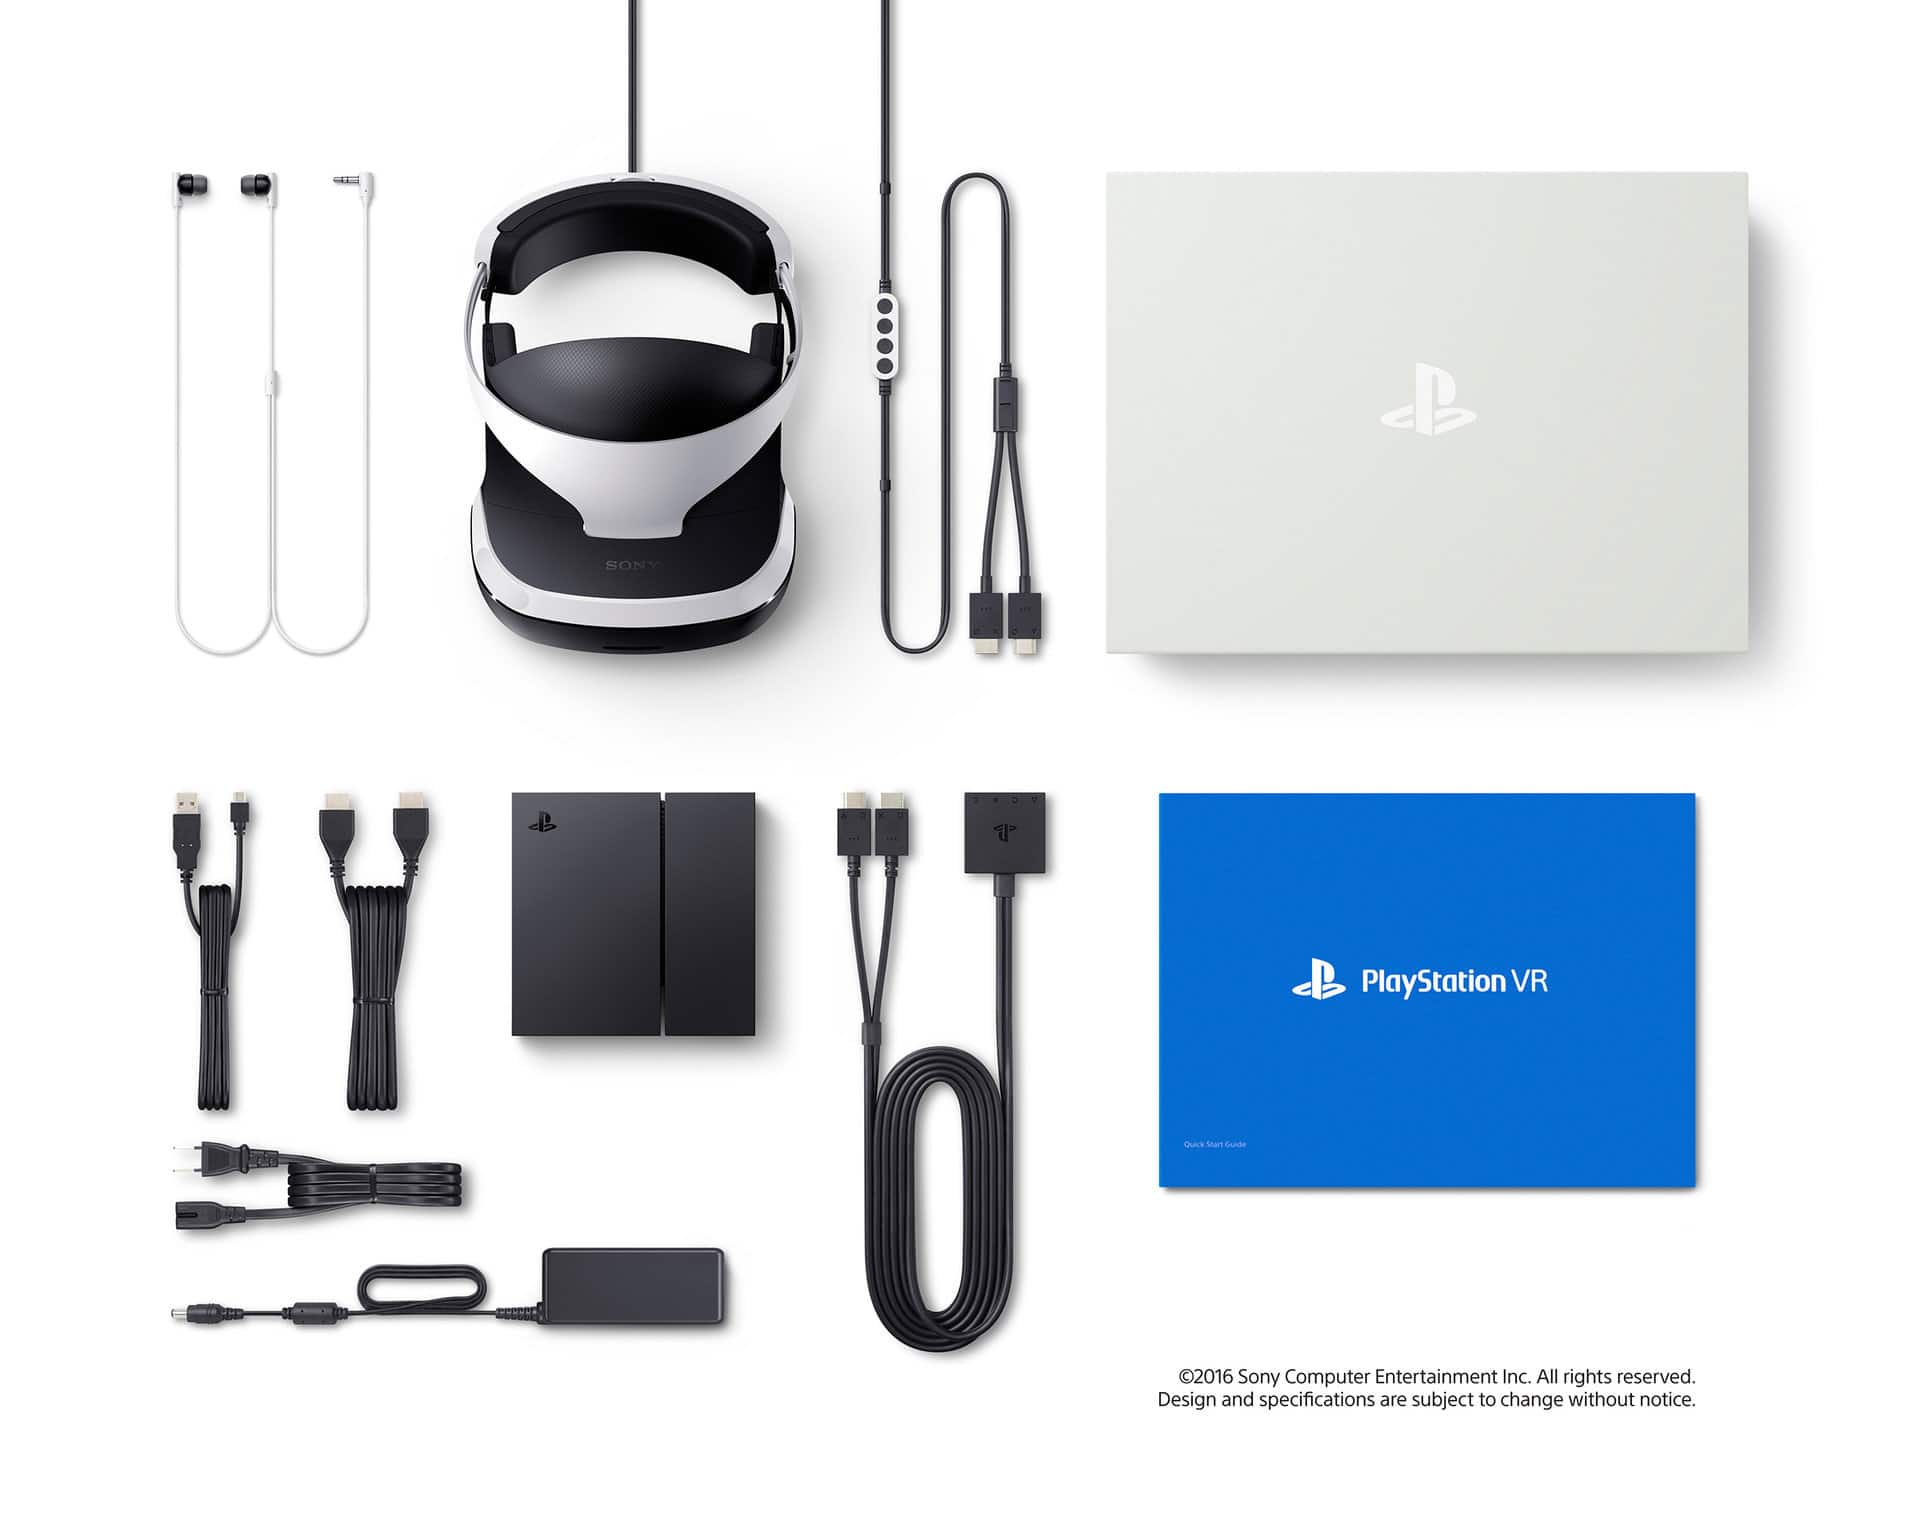 playstation_vr_box